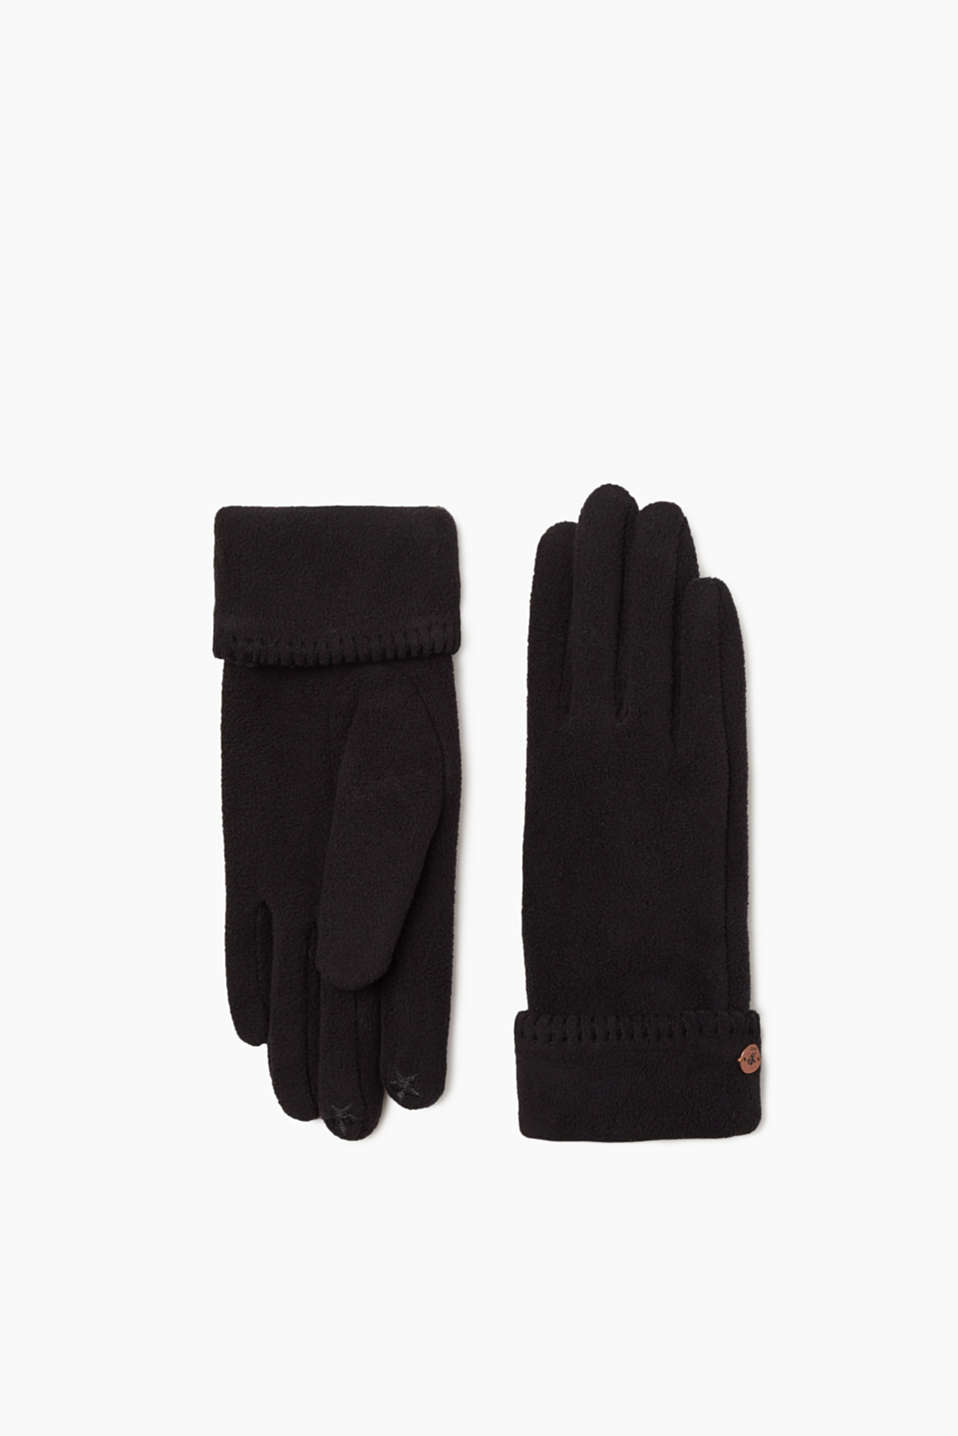 edc fleece handschuhe mit teddy futter im online shop kaufen. Black Bedroom Furniture Sets. Home Design Ideas